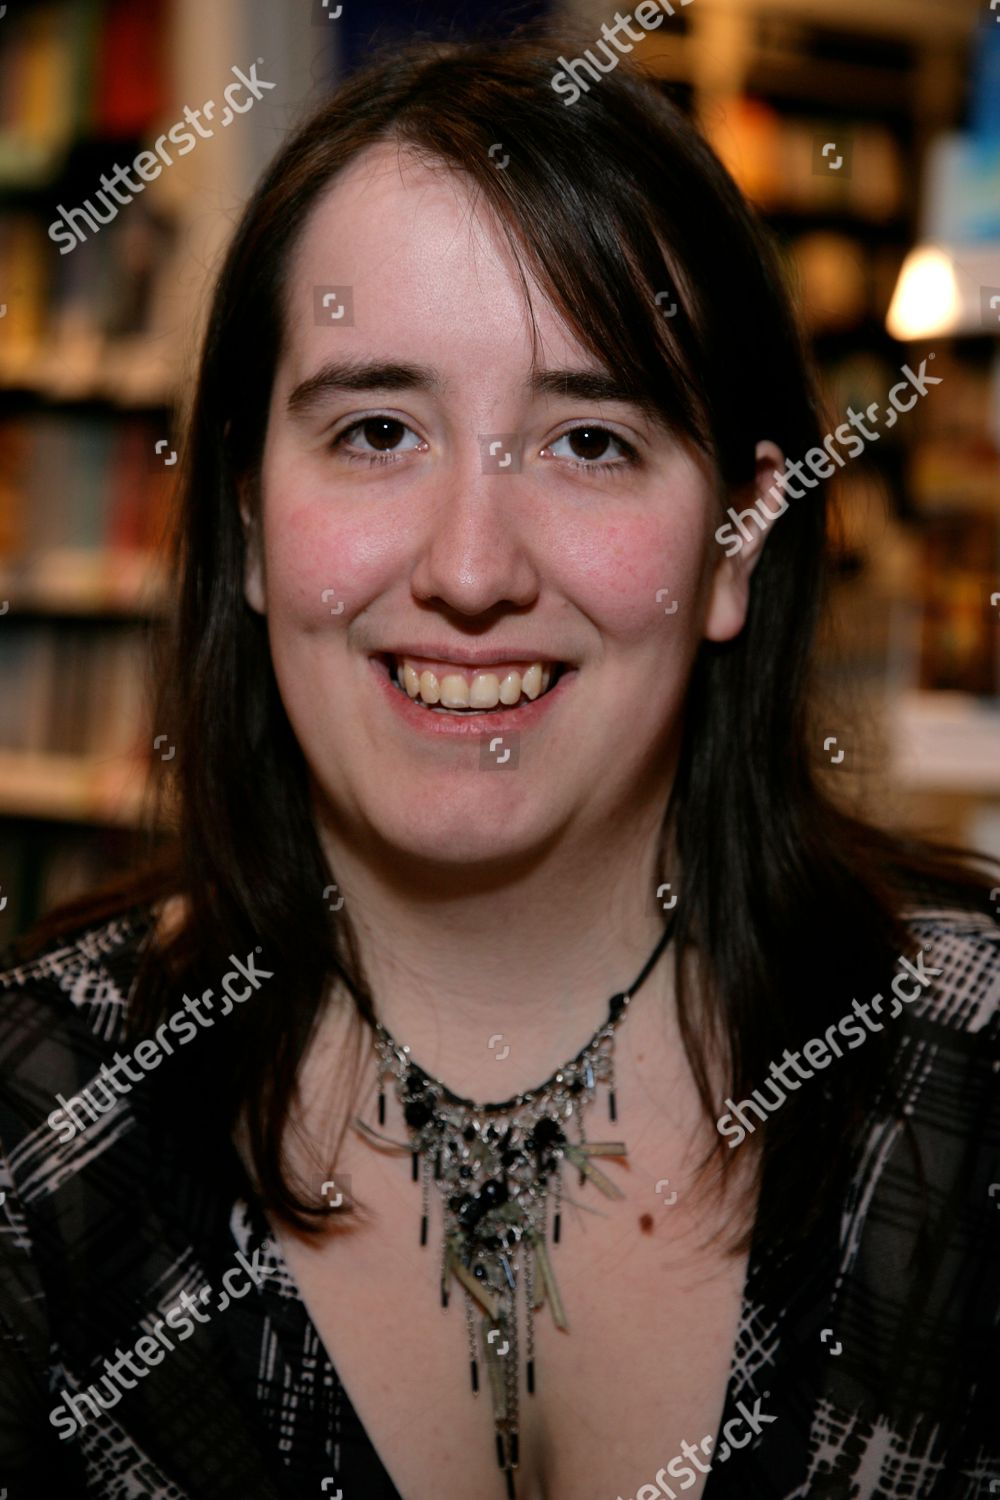 「'Child Of The Hive' Jessica Meats Book Promotion, Waterstones, Reading, Britain - 13 Feb 2010」のストックフォト